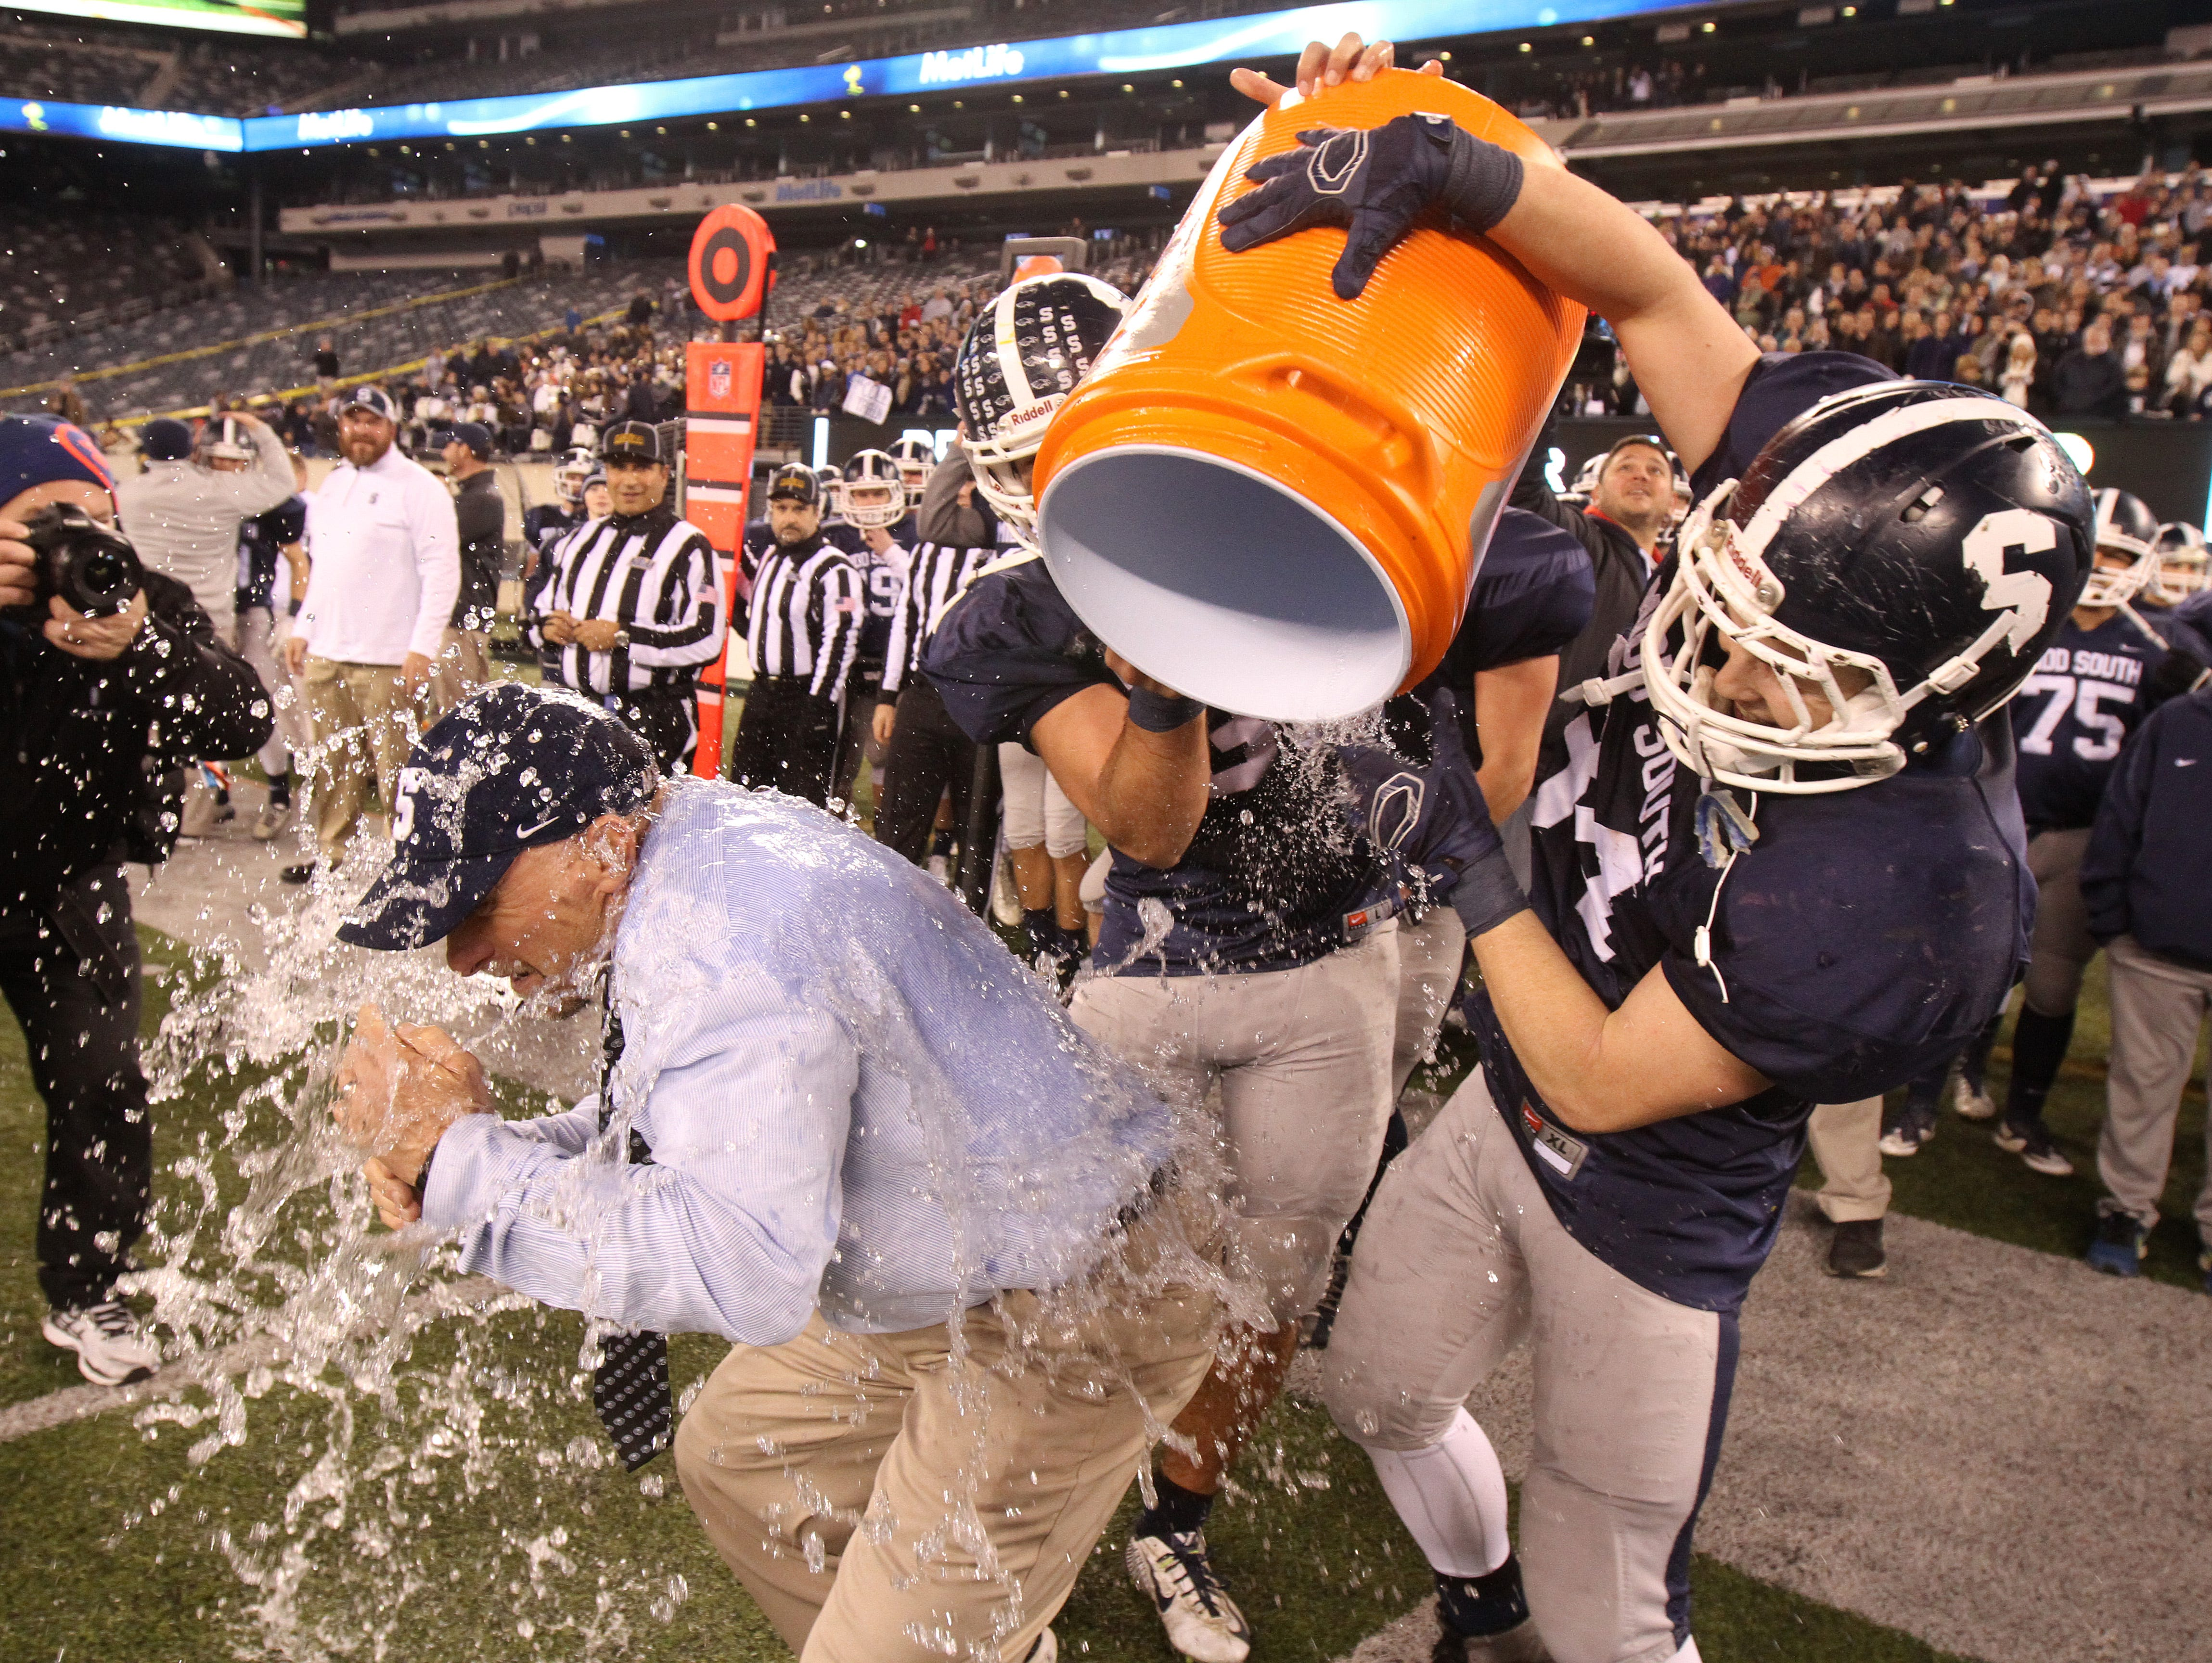 Middletown South High School players dump Gatorade on head coach Steve Antonucci after winning the state title against Phillipsburg in the North 2 Group IV game of the 2015 NJSIAA/MetLife Stadium High School Football Championships at MetLife Stadium in East Rutherford, NJ Saturday December 5, 2015.